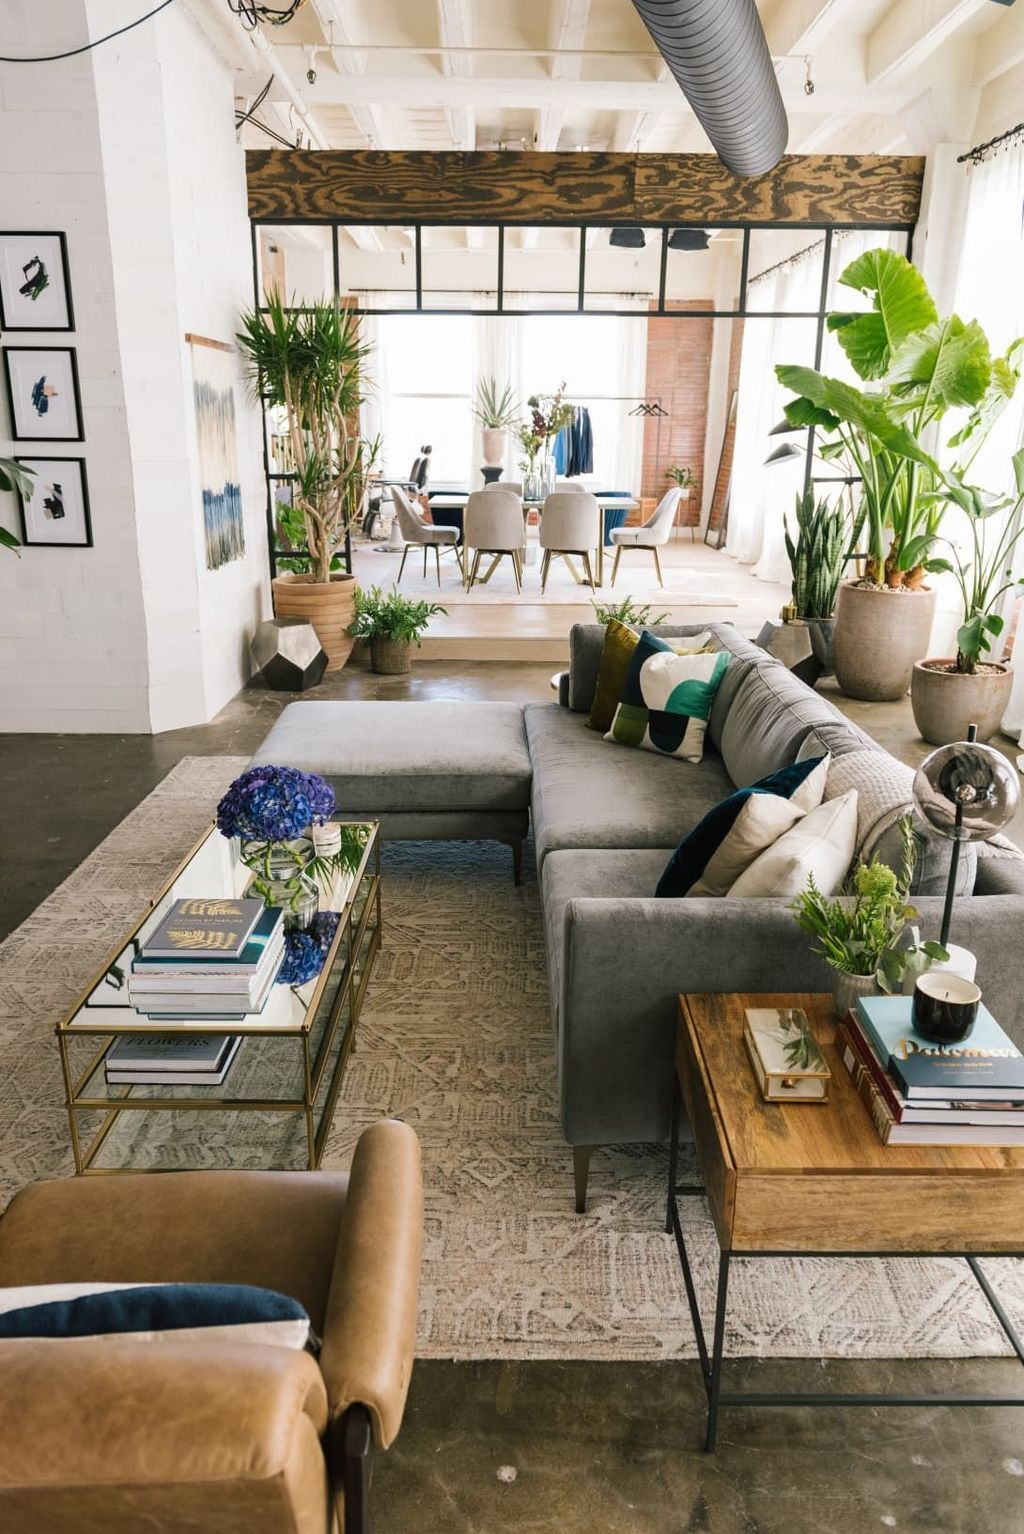 9 Stunning Apartment Furniture Ideas You Must Have - PIMPHOMEE in